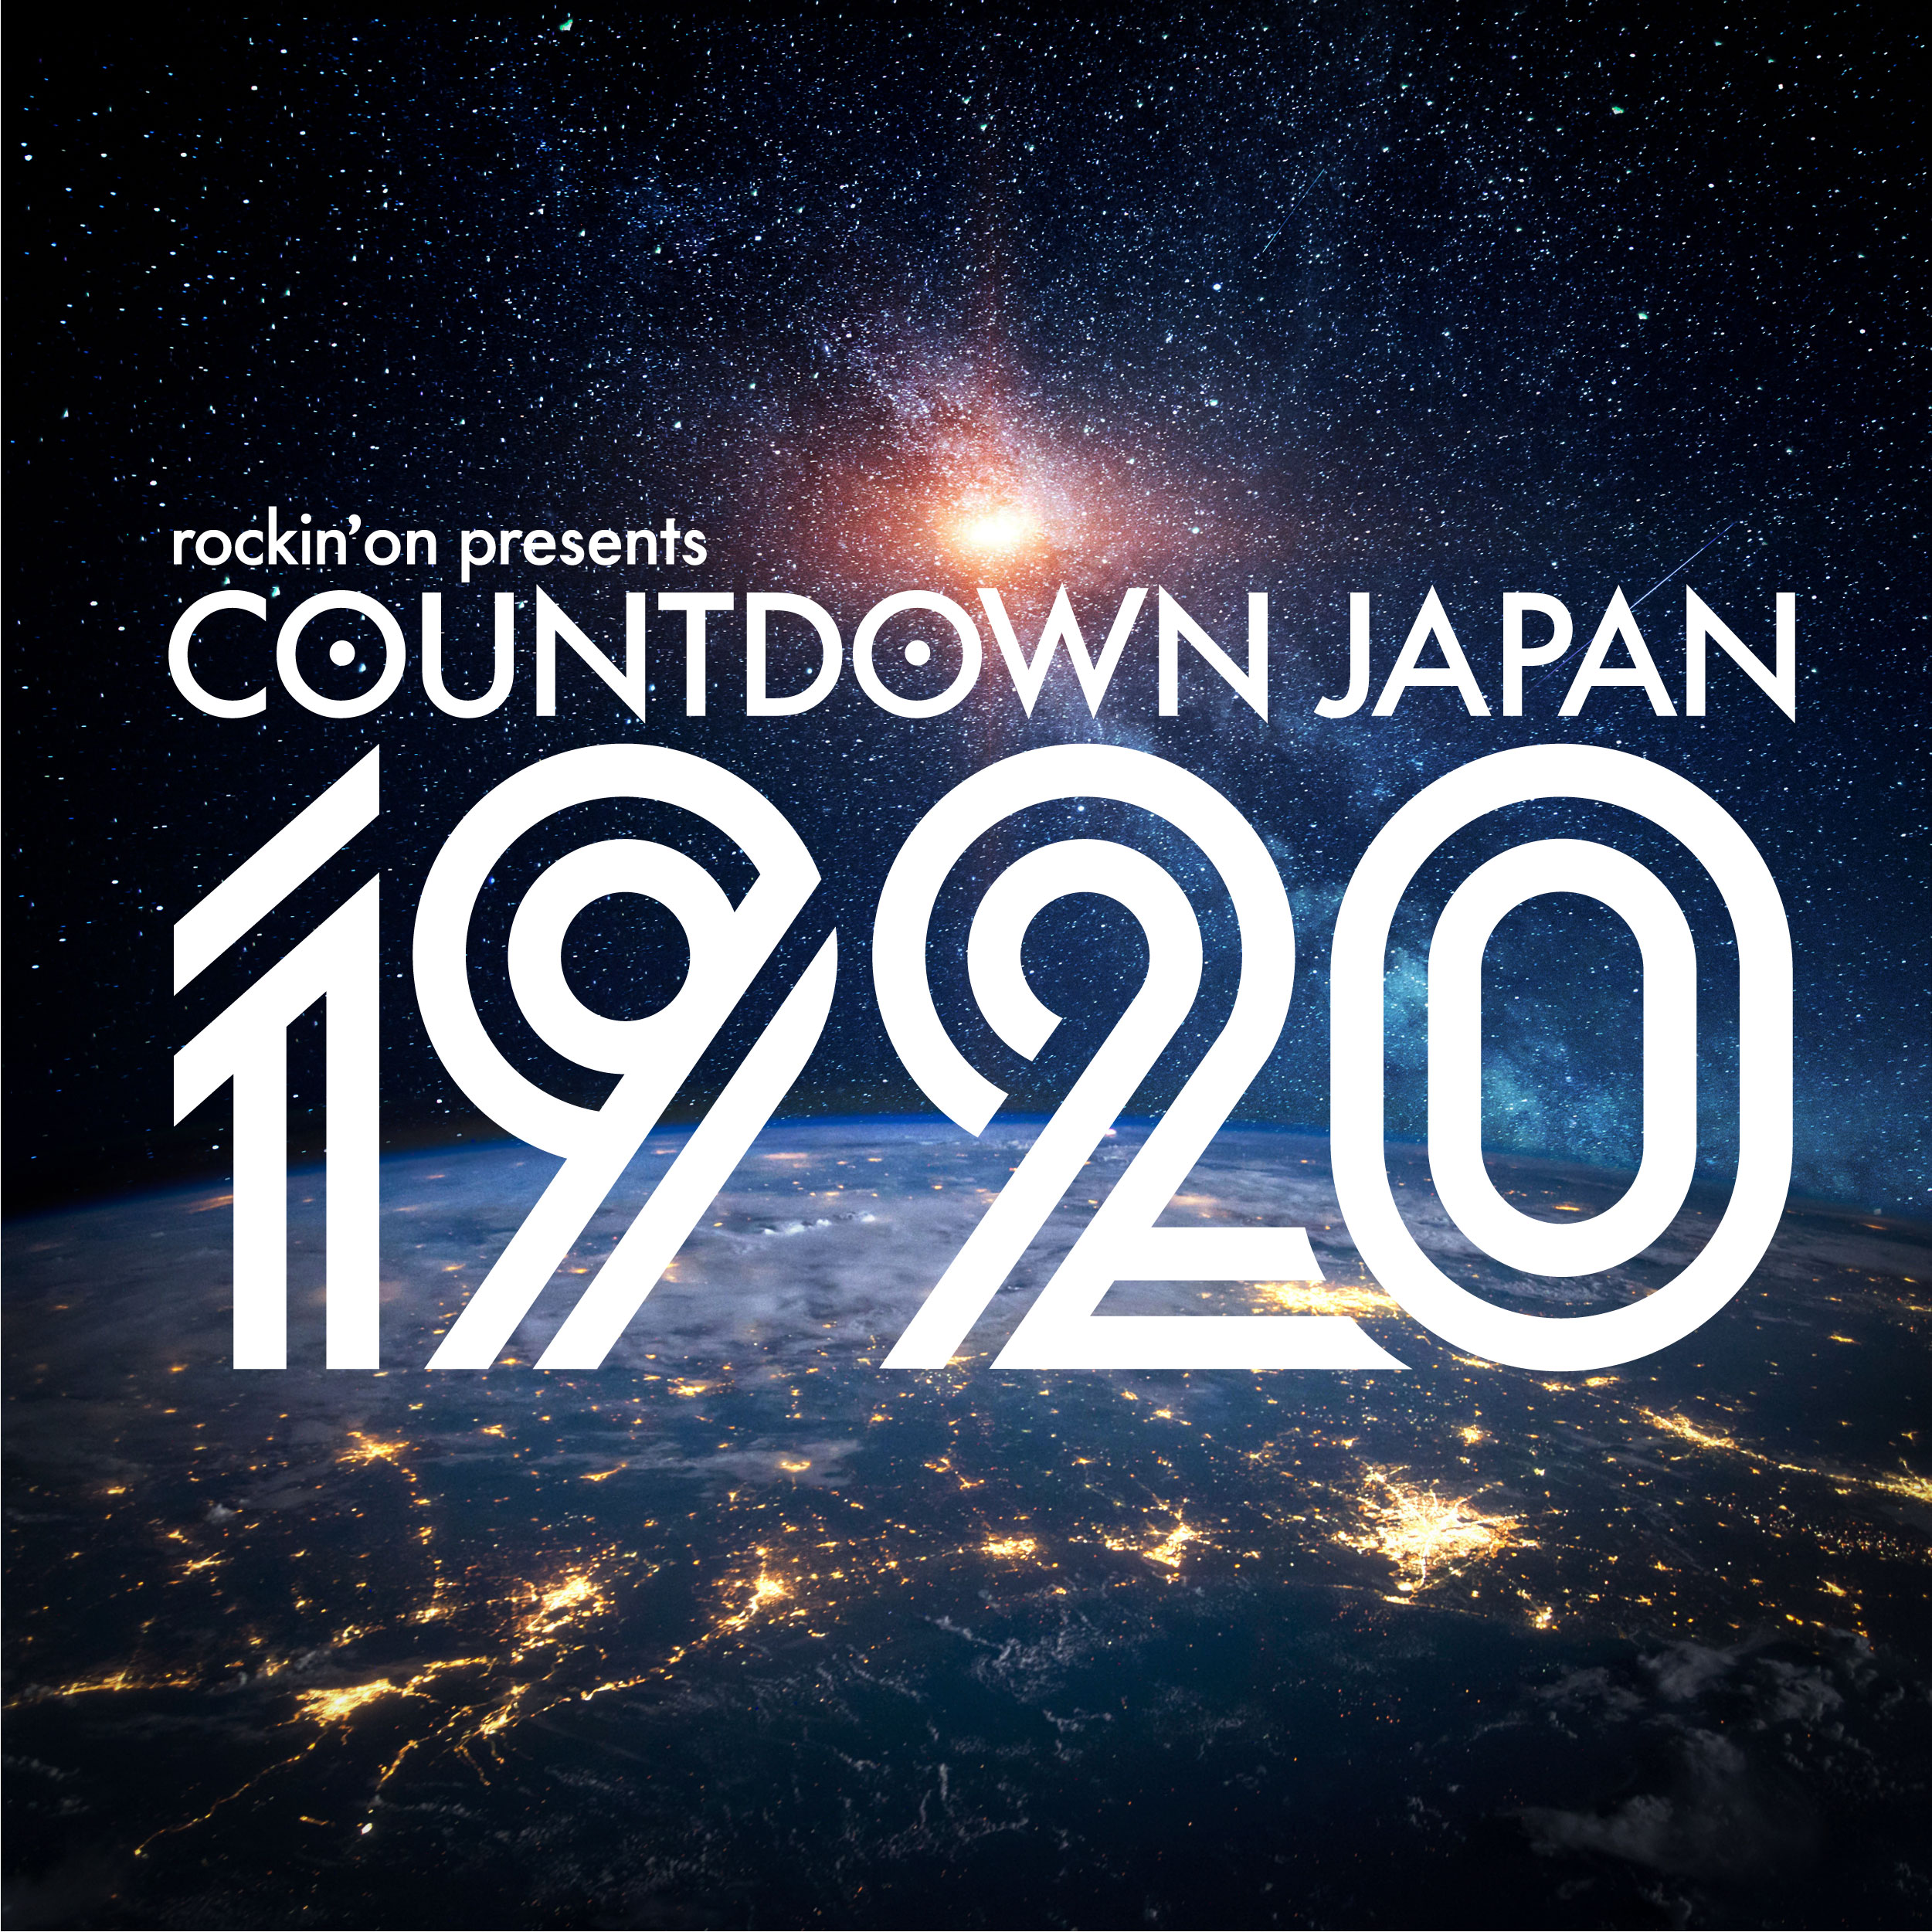 rockin' on presents COUNTDOWN JAPAN 19/20